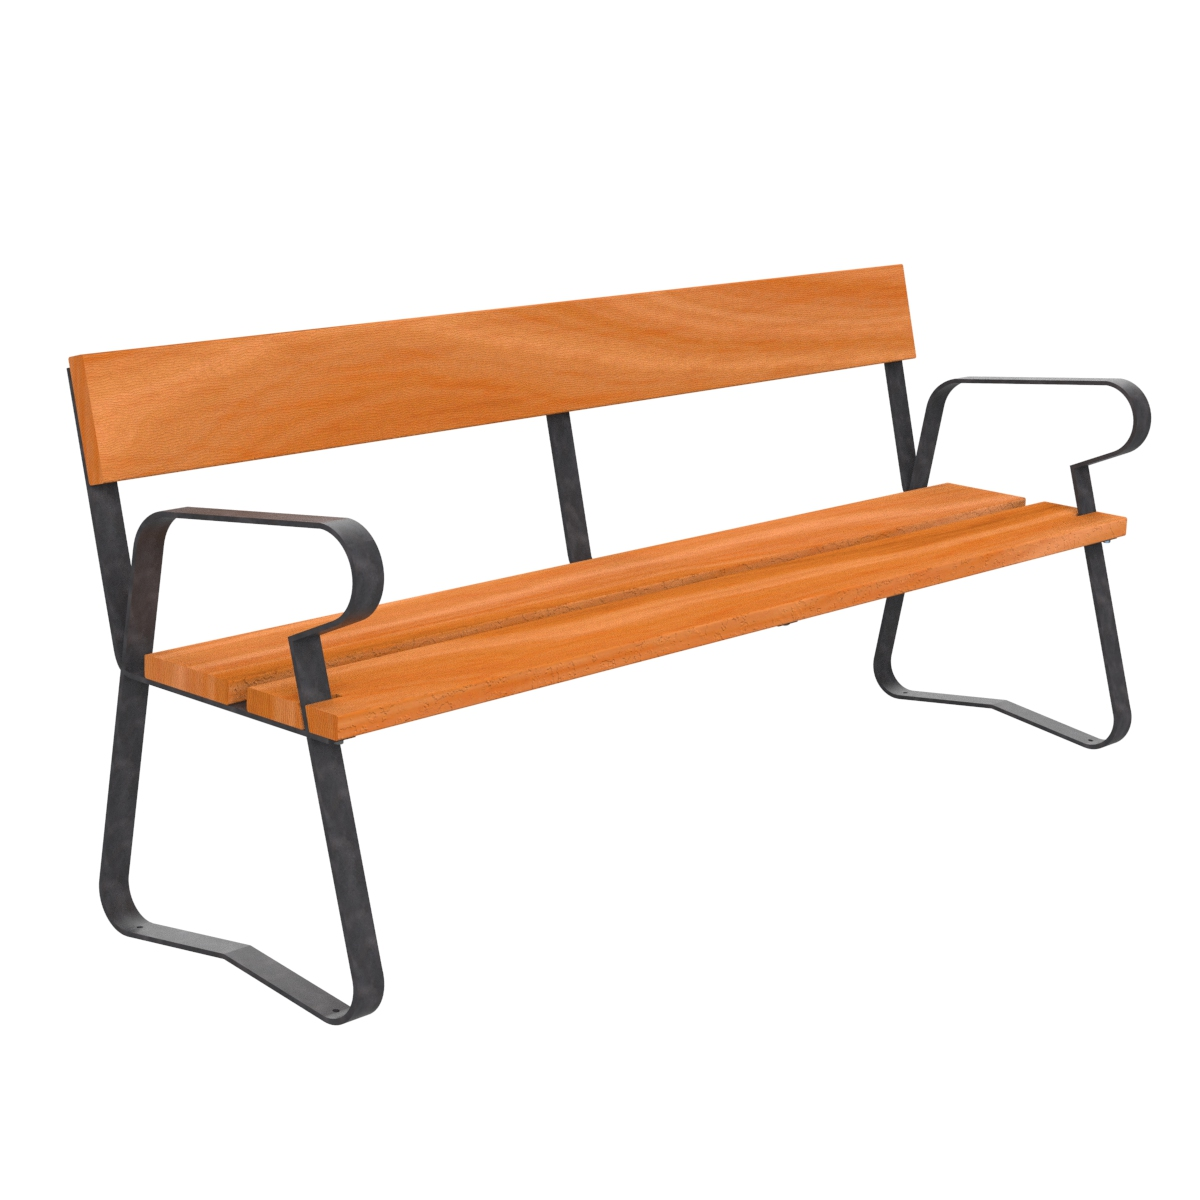 Madrid Wood Bench urban furniture to sit down in parks and gardens